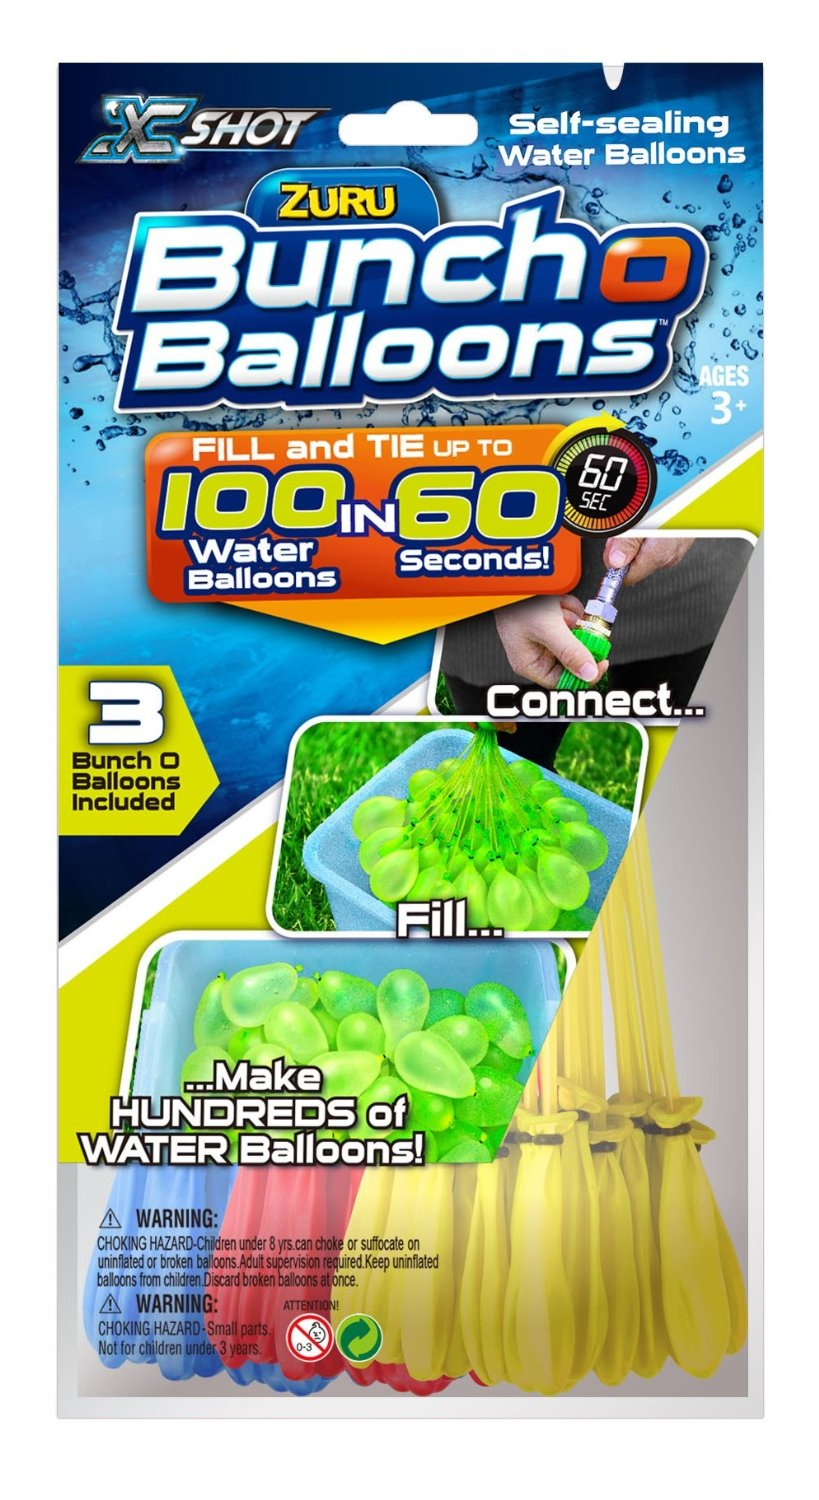 Zuru Bunch O Balloons - Fill 100 Water Balloons In 60 Seconds